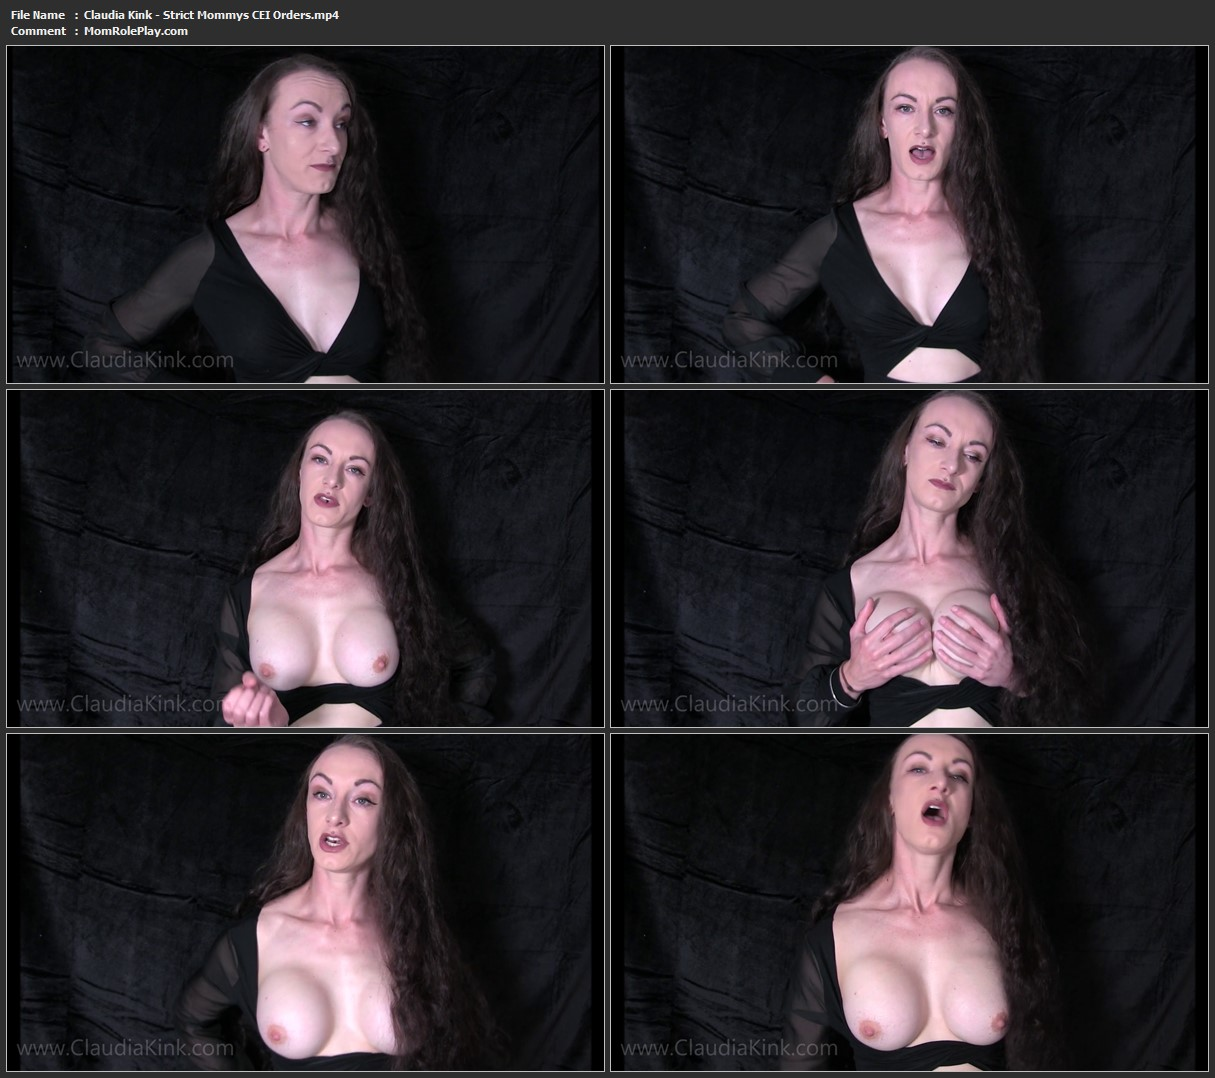 Mistress Claudia Kink - Strict Mommys CEI Orders